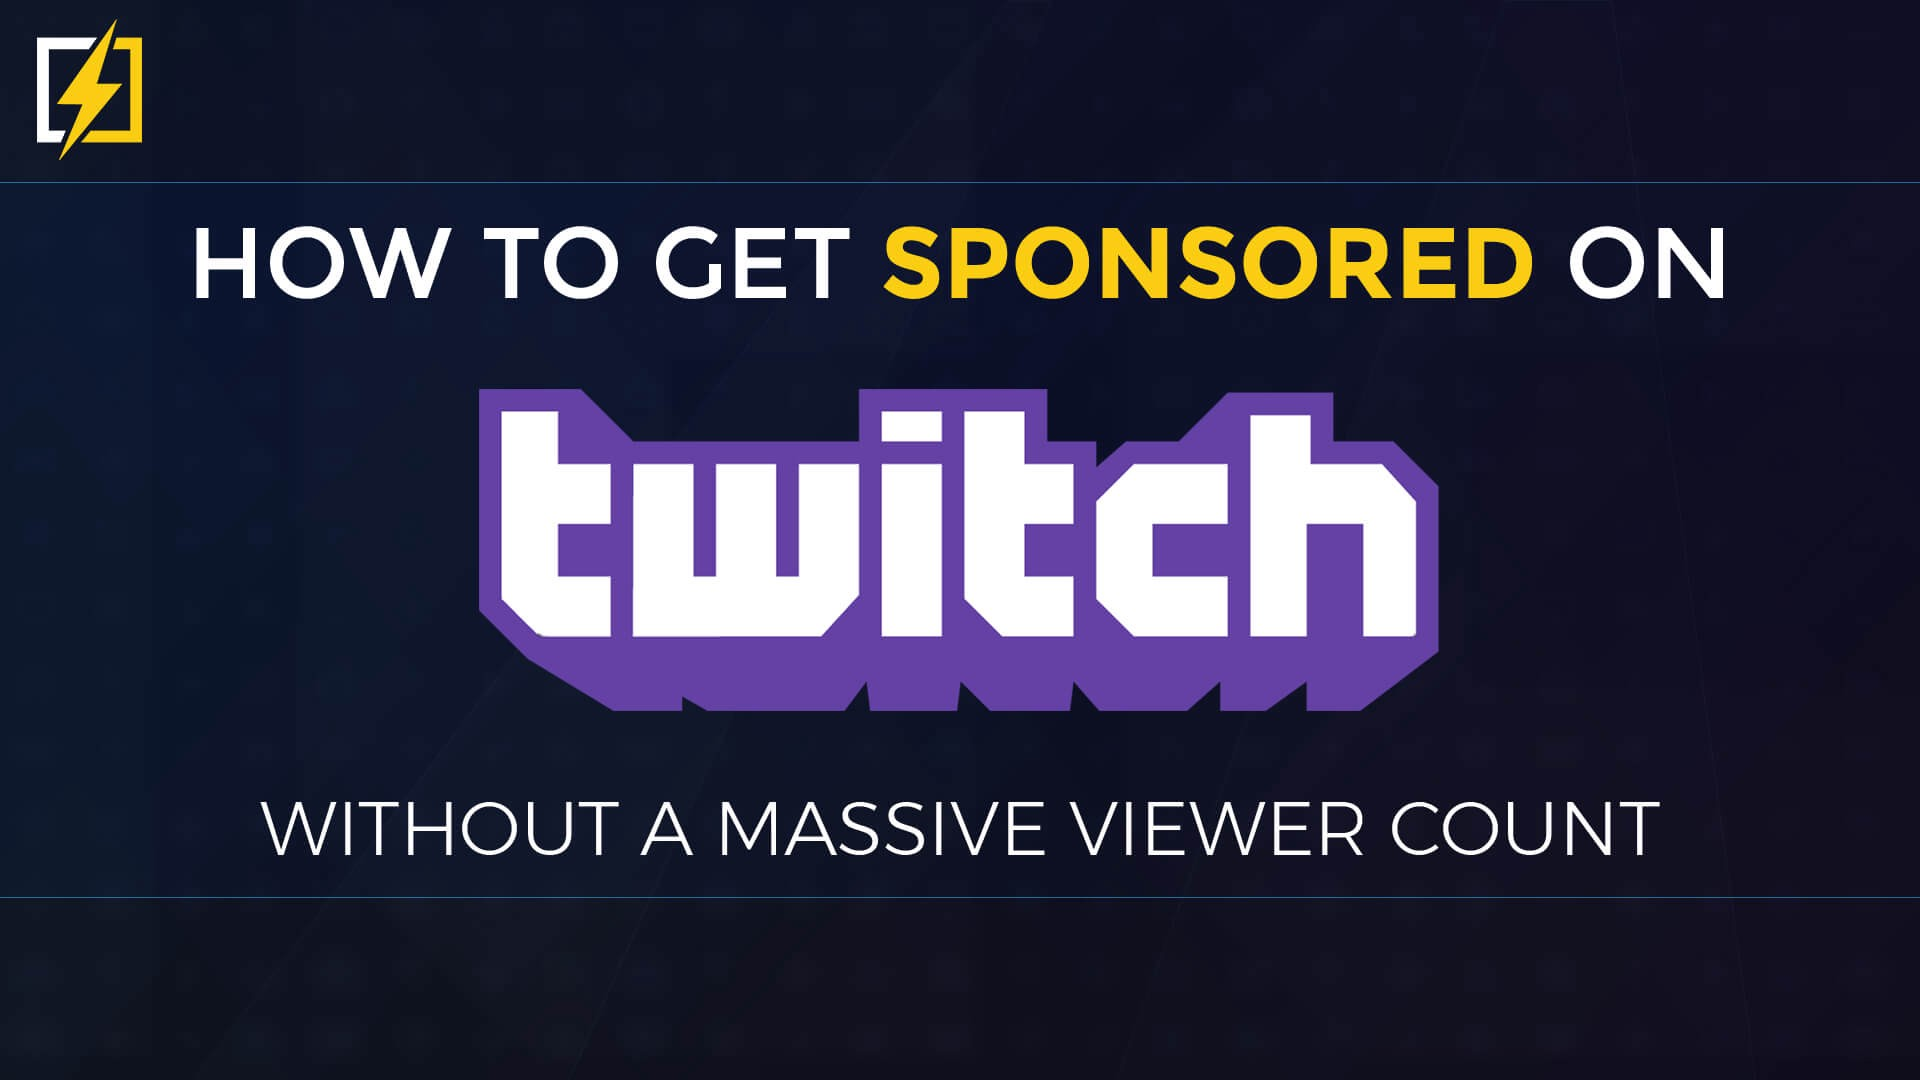 How To Get Sponsored on Twitch Without A Massive Viewer Count